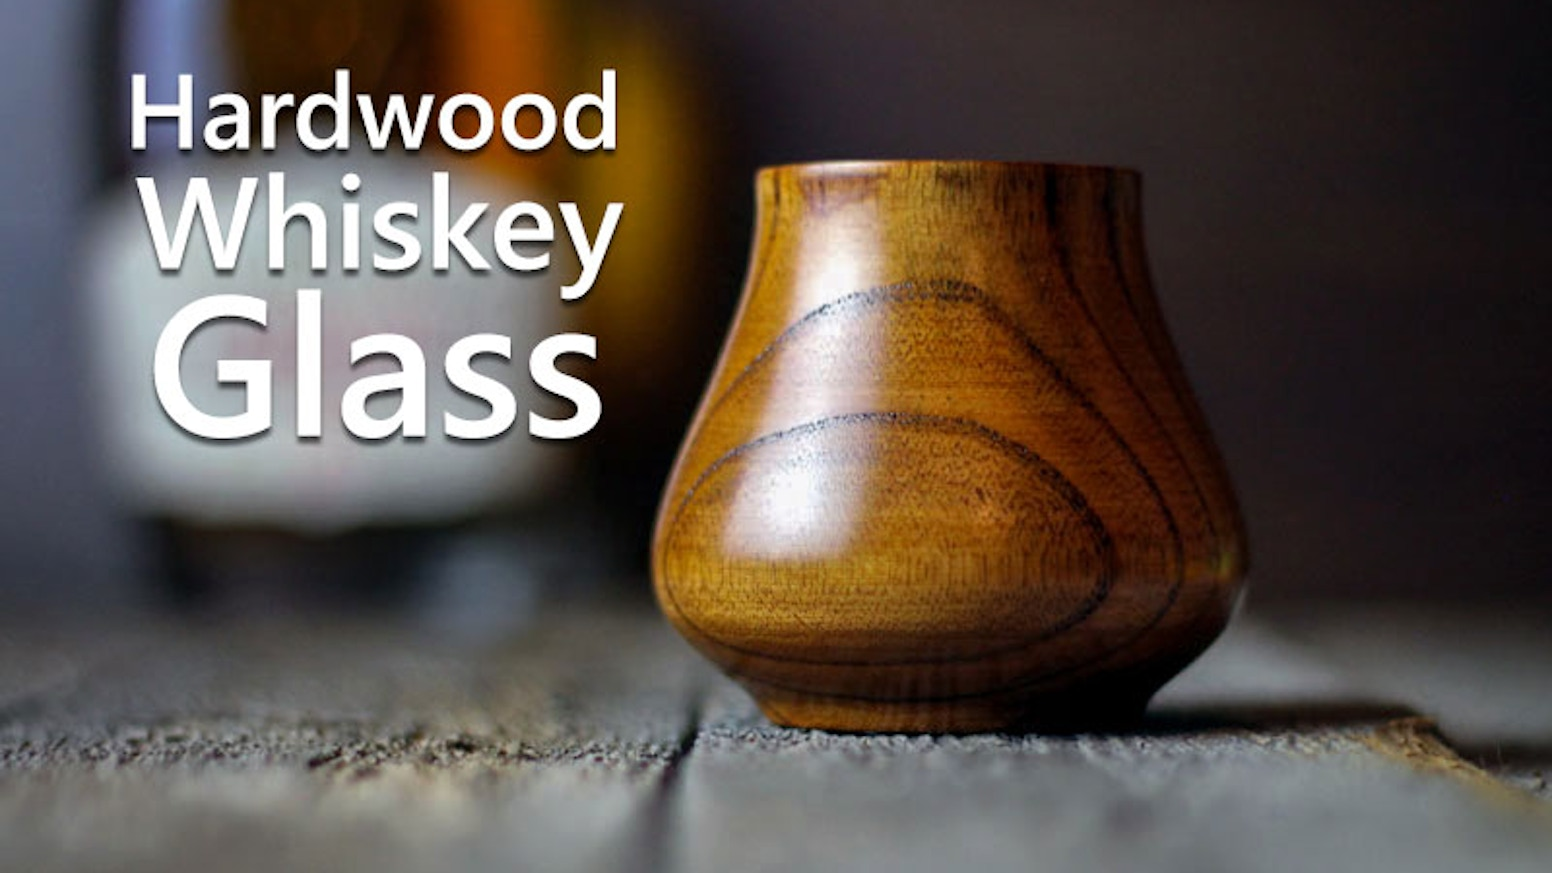 A handcrafted hardwood whiskey glass. Built with a purpose, sealed with natural beeswax.